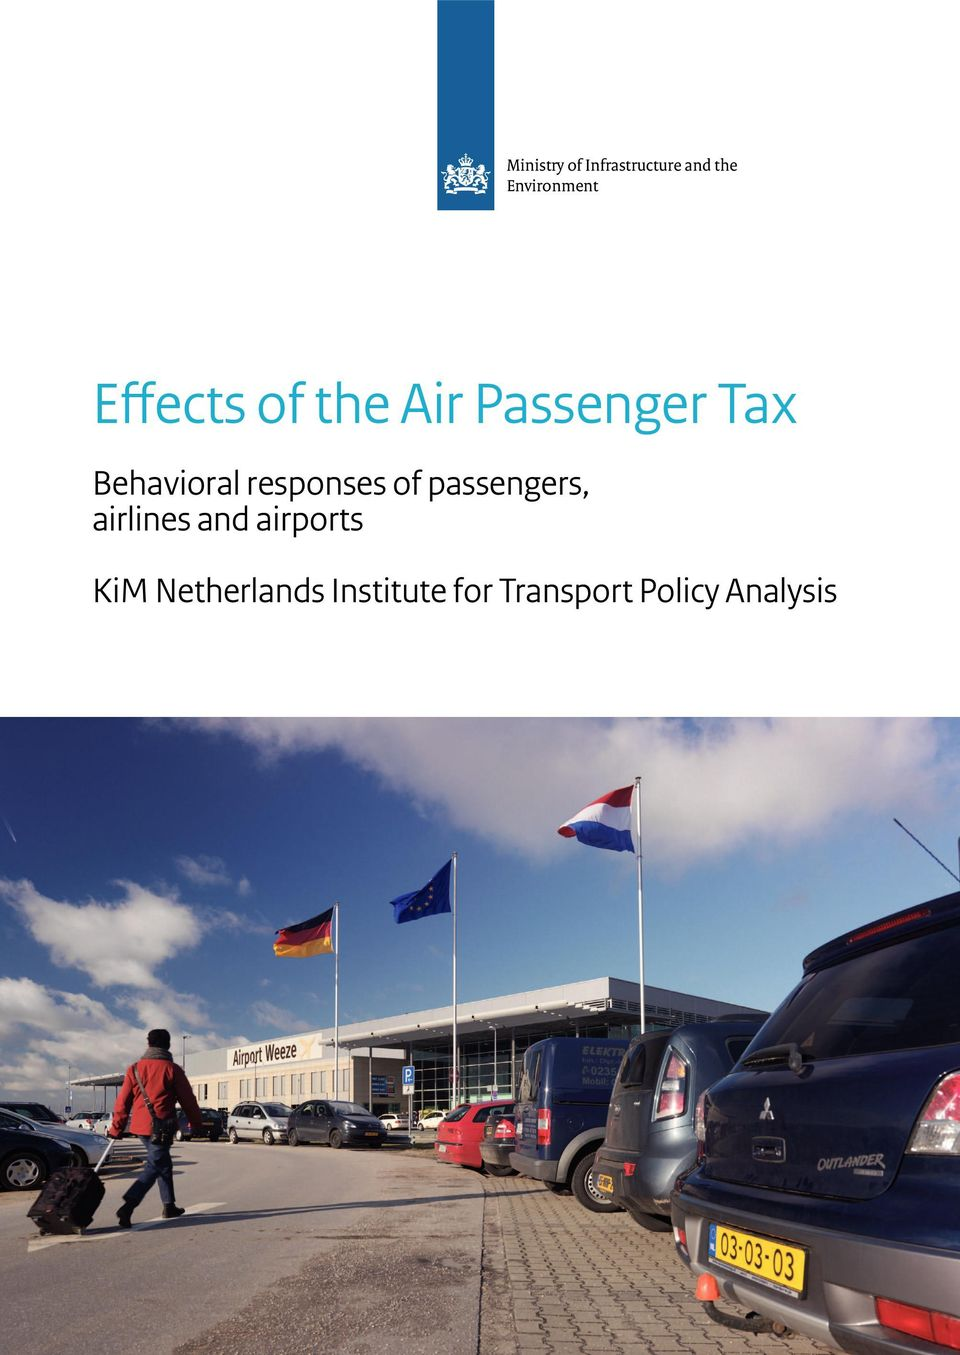 responses of passengers, airlines and airports